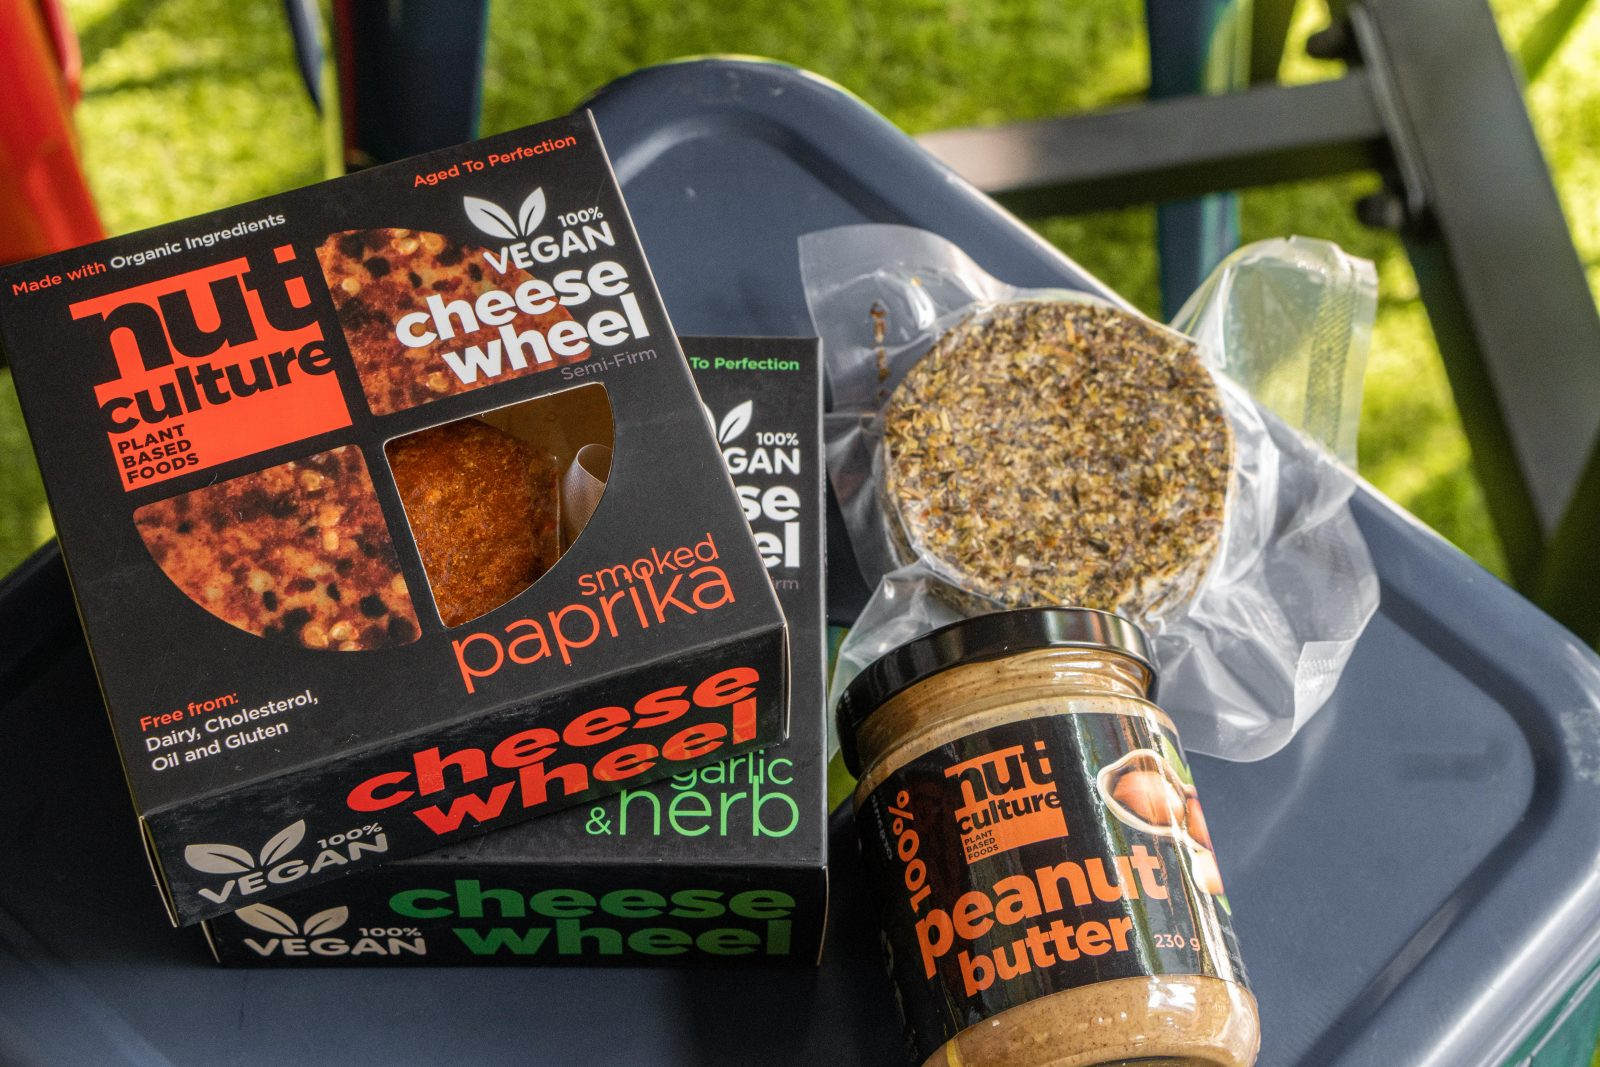 Nut Culture's Smoked Paprika 'Cheese' and Garlic and Herb 'Cheese'